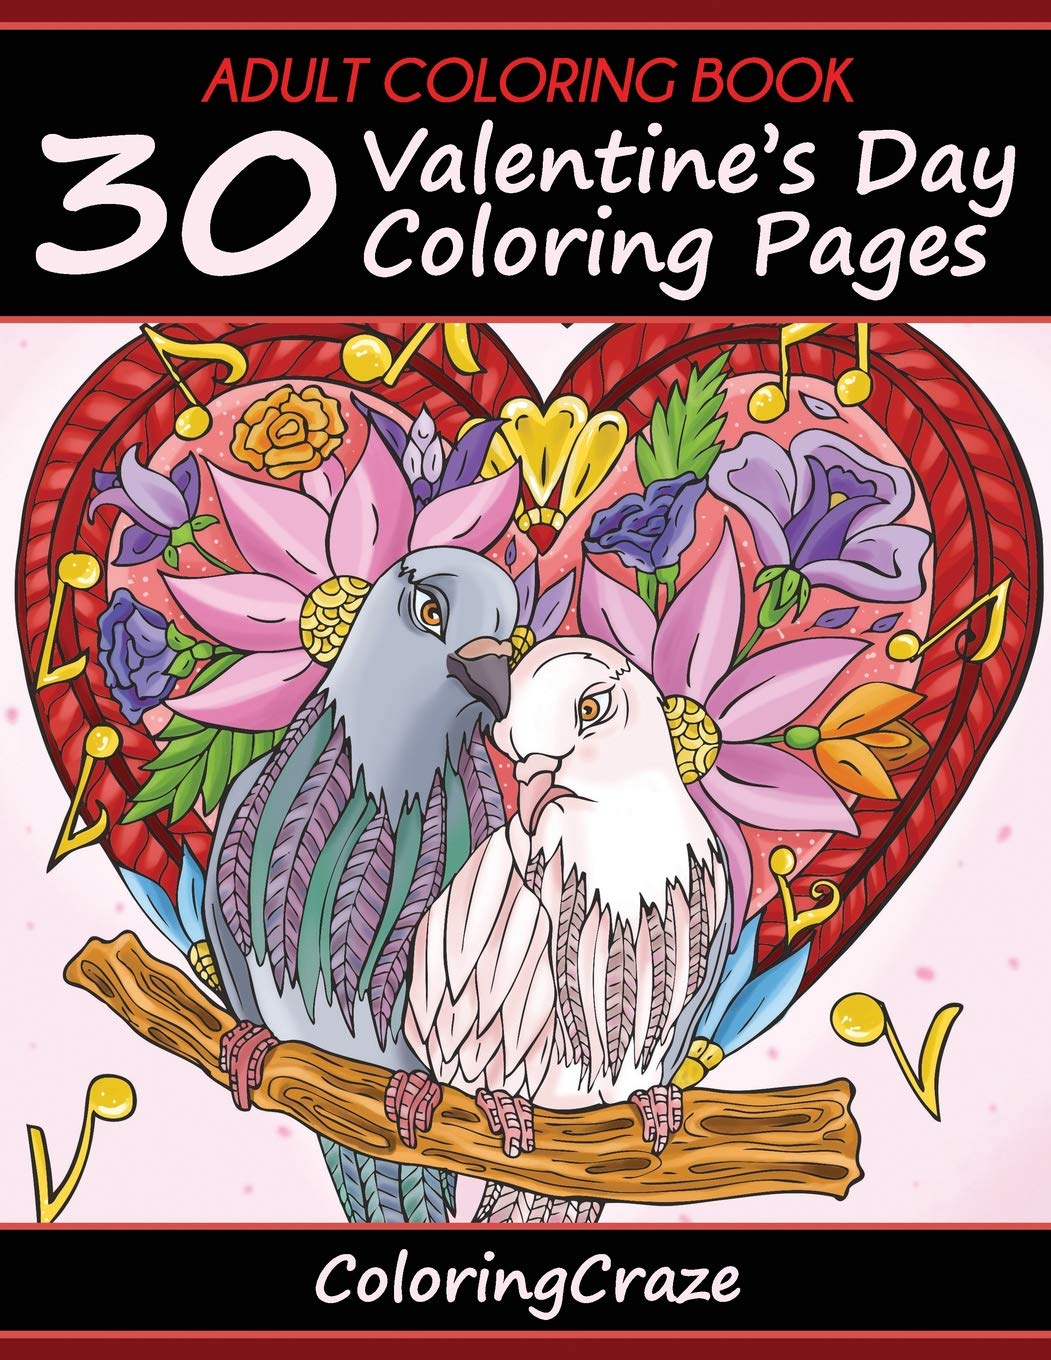 Adult Coloring Book 30 Valentine S Day Coloring Pages I Love You Collection Adult Coloring Books Illustrators Alliance 9781523625079 Amazon Com Books